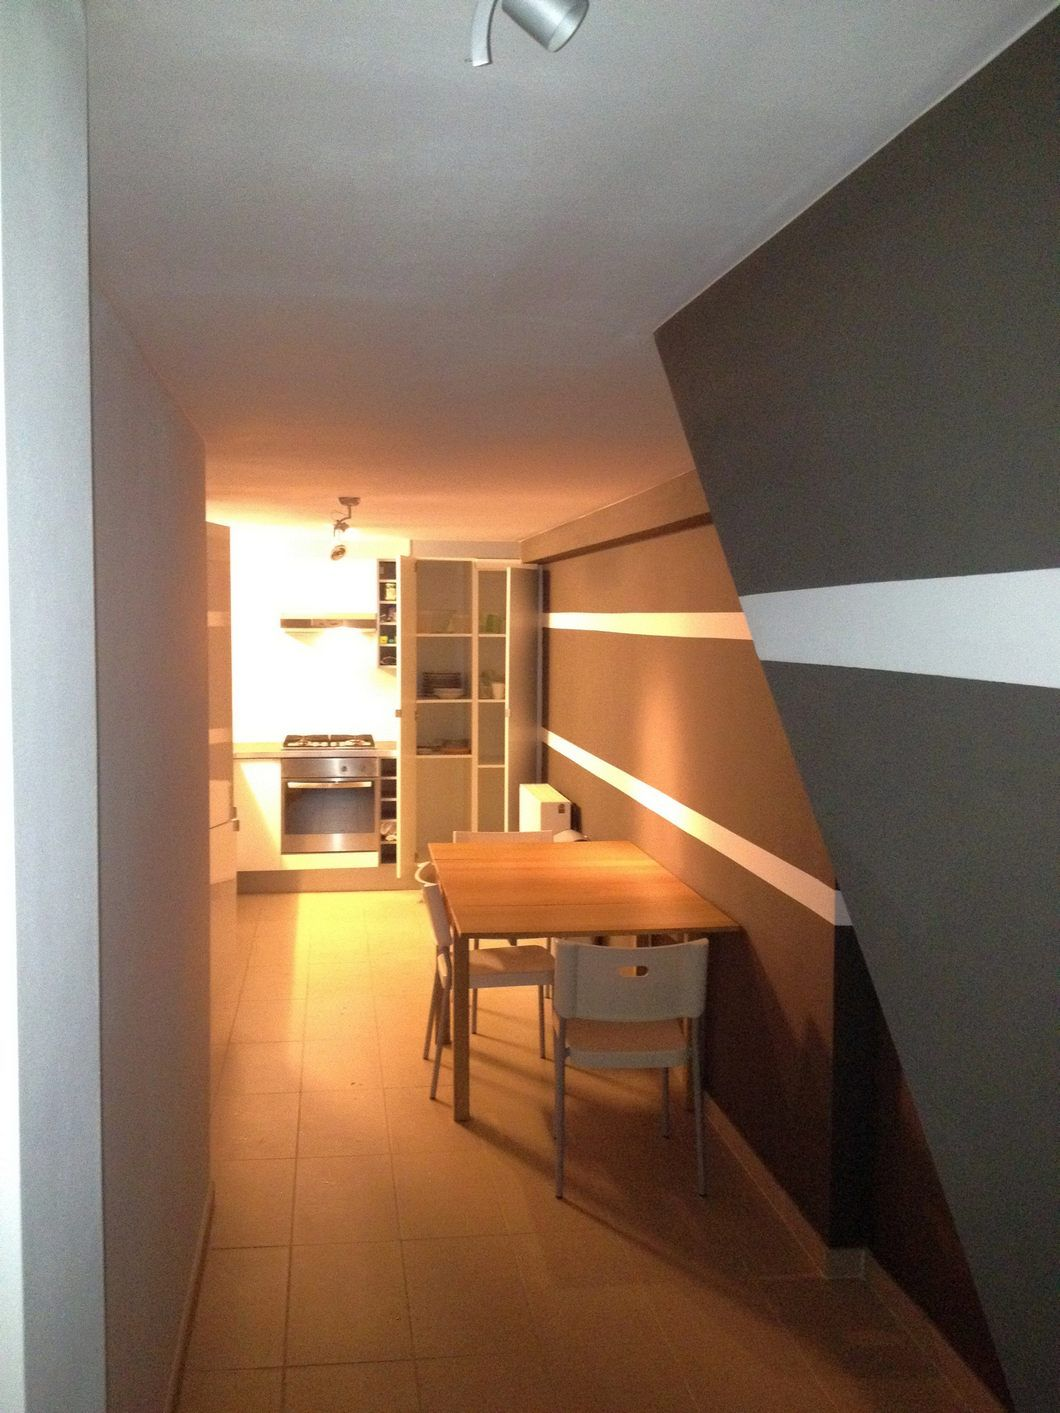 Apartment of 80m² located on mezzanine in a house with ...